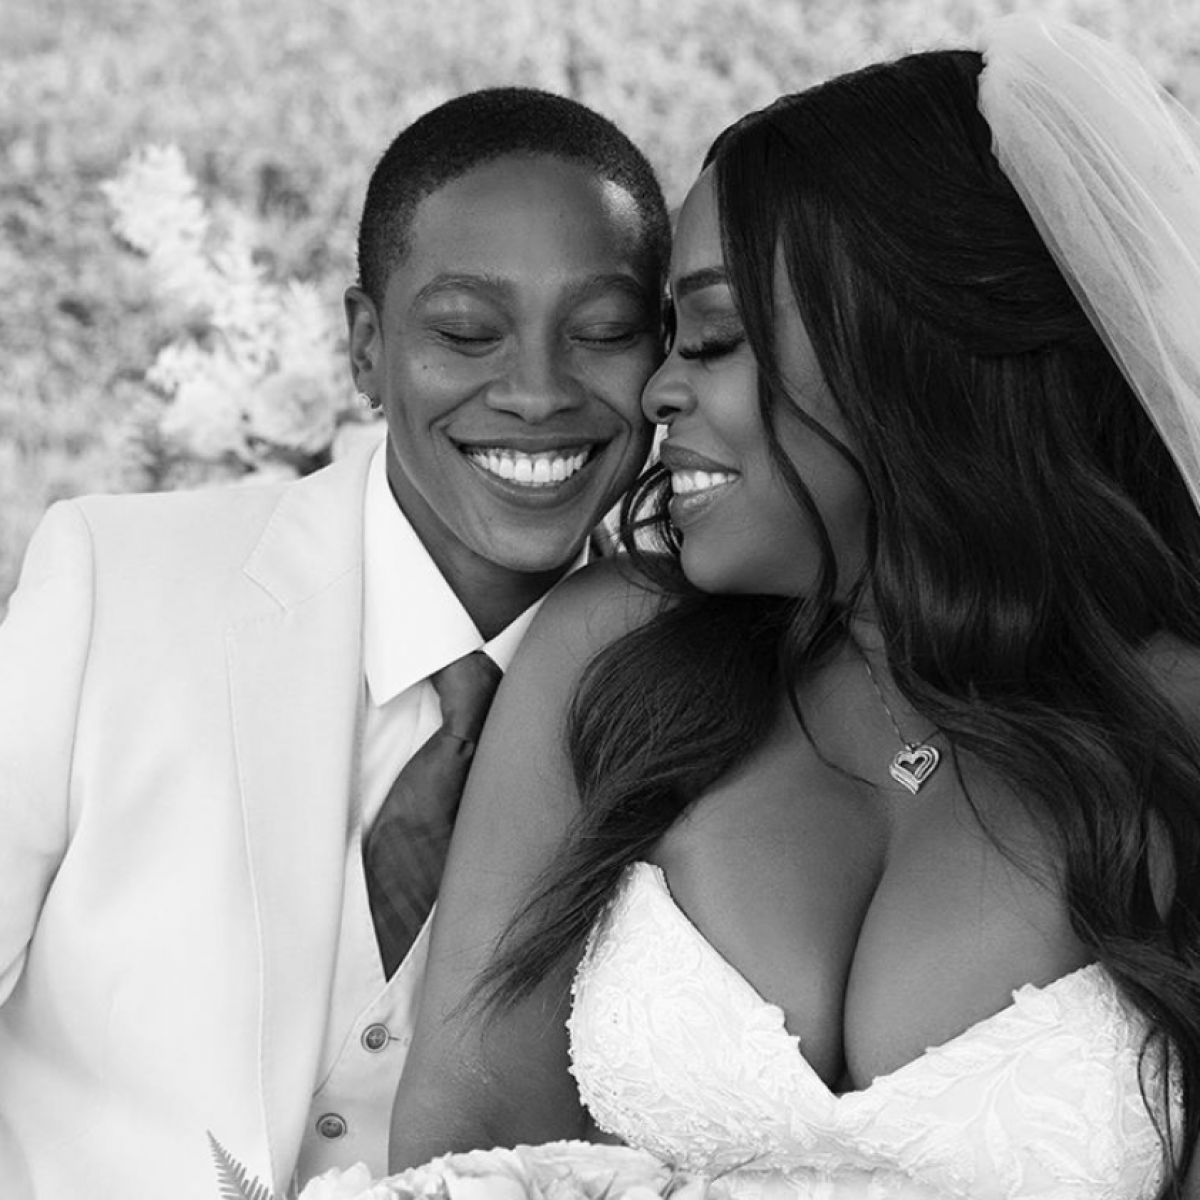 Niecy Nash Gushes About Her New Wife Jessica Betts: 'I Love Who I Love'